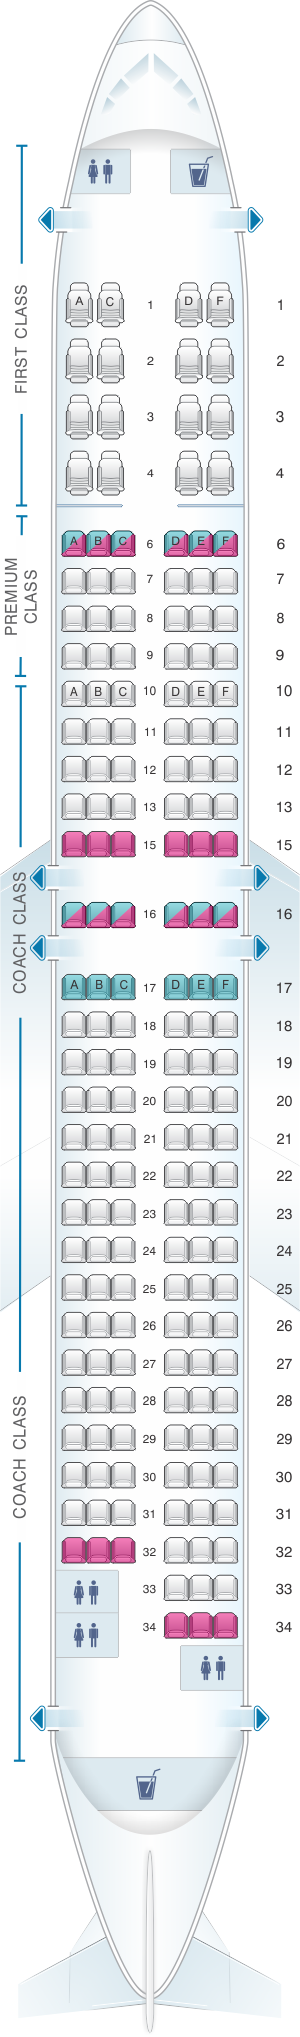 Seat map for Alaska Airlines - Horizon Air Boeing B737 900